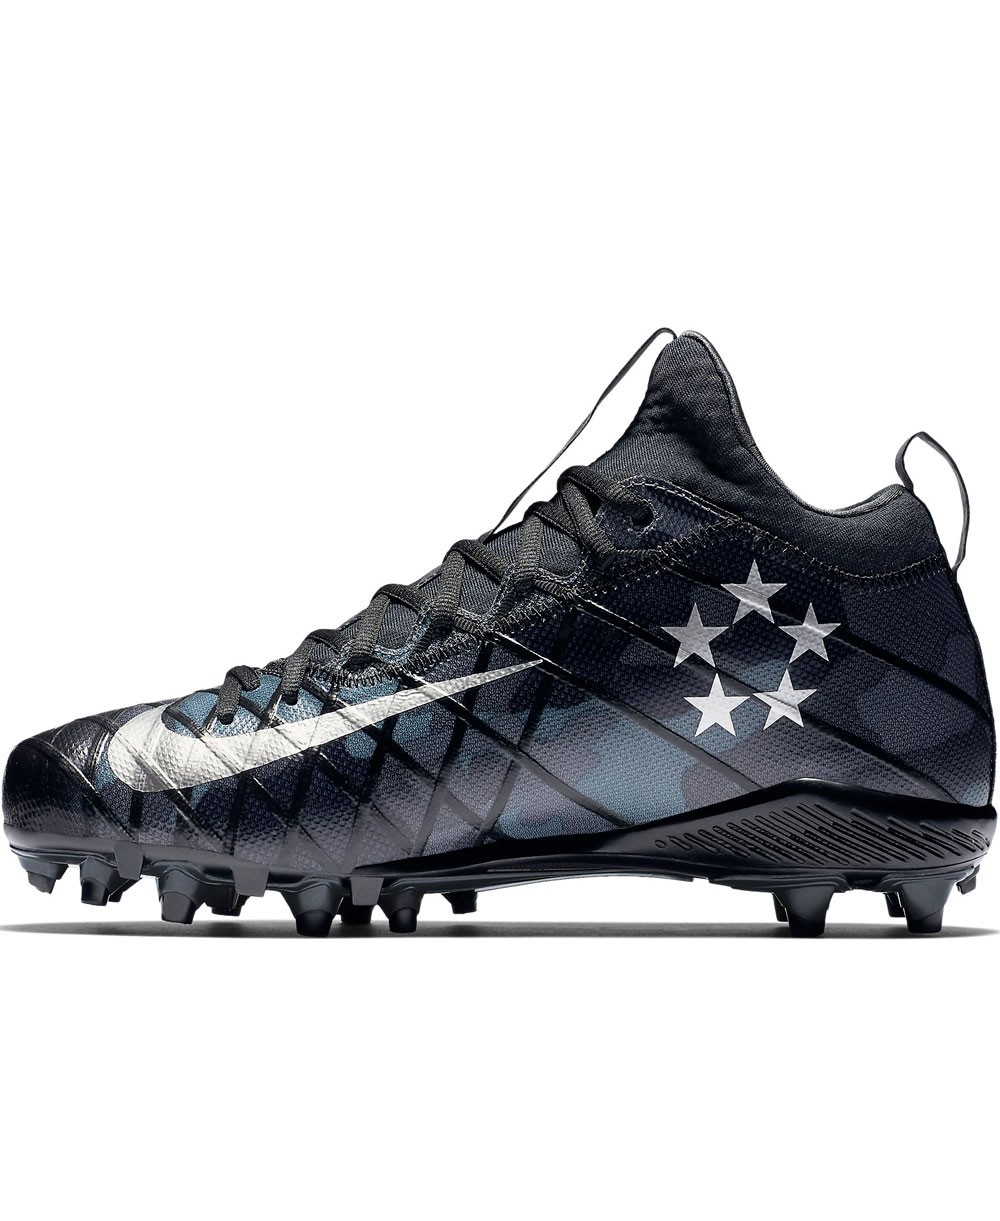 purchase cheap c5fea dfdca Nike - American Football Cleats for men, model Alpha Field General Elite  Camo, colour Black Anthracite Dark Grey Metallic Silver